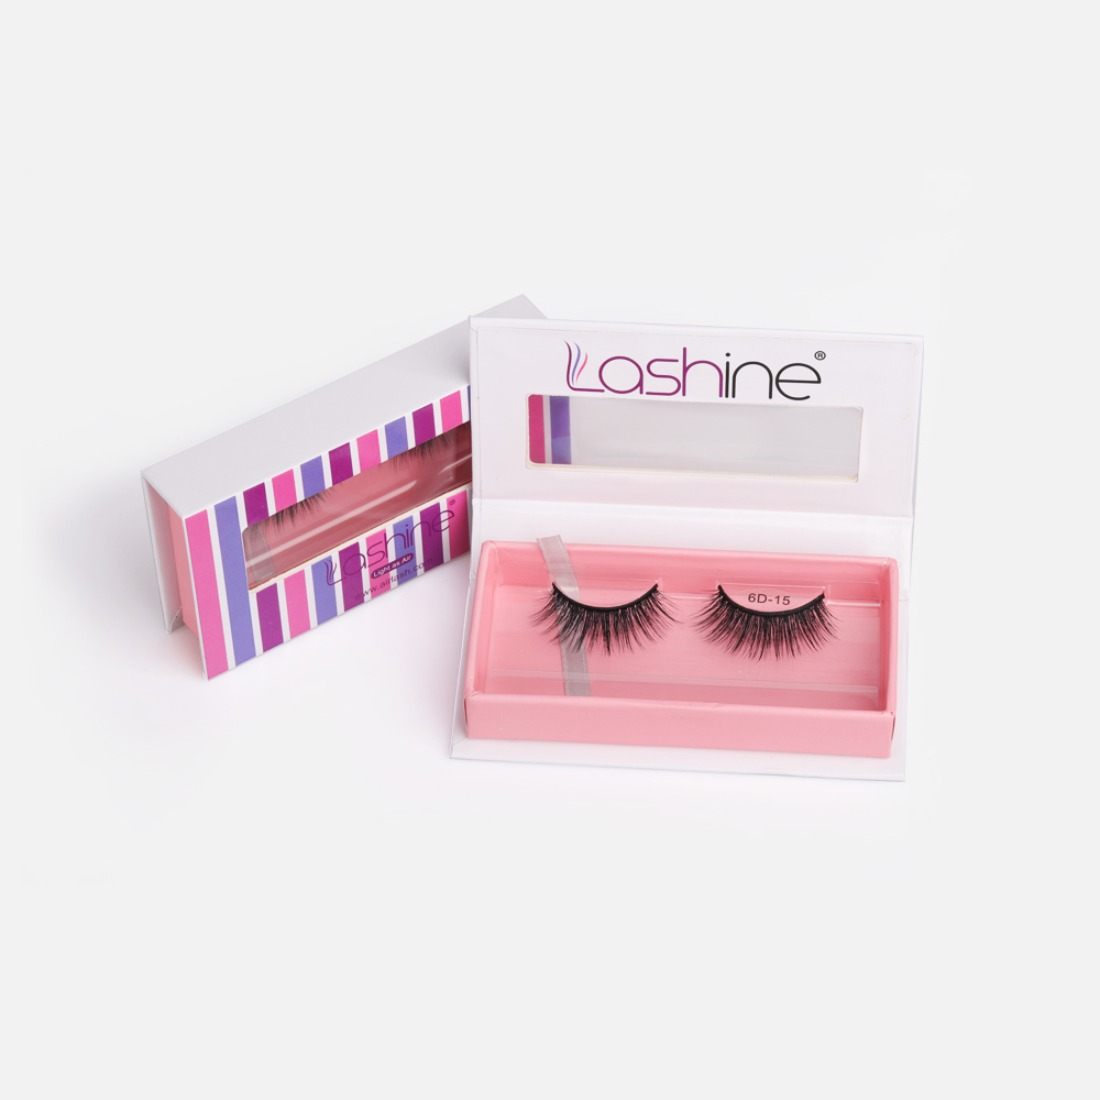 Hot Faux Mink lashes 6D-15